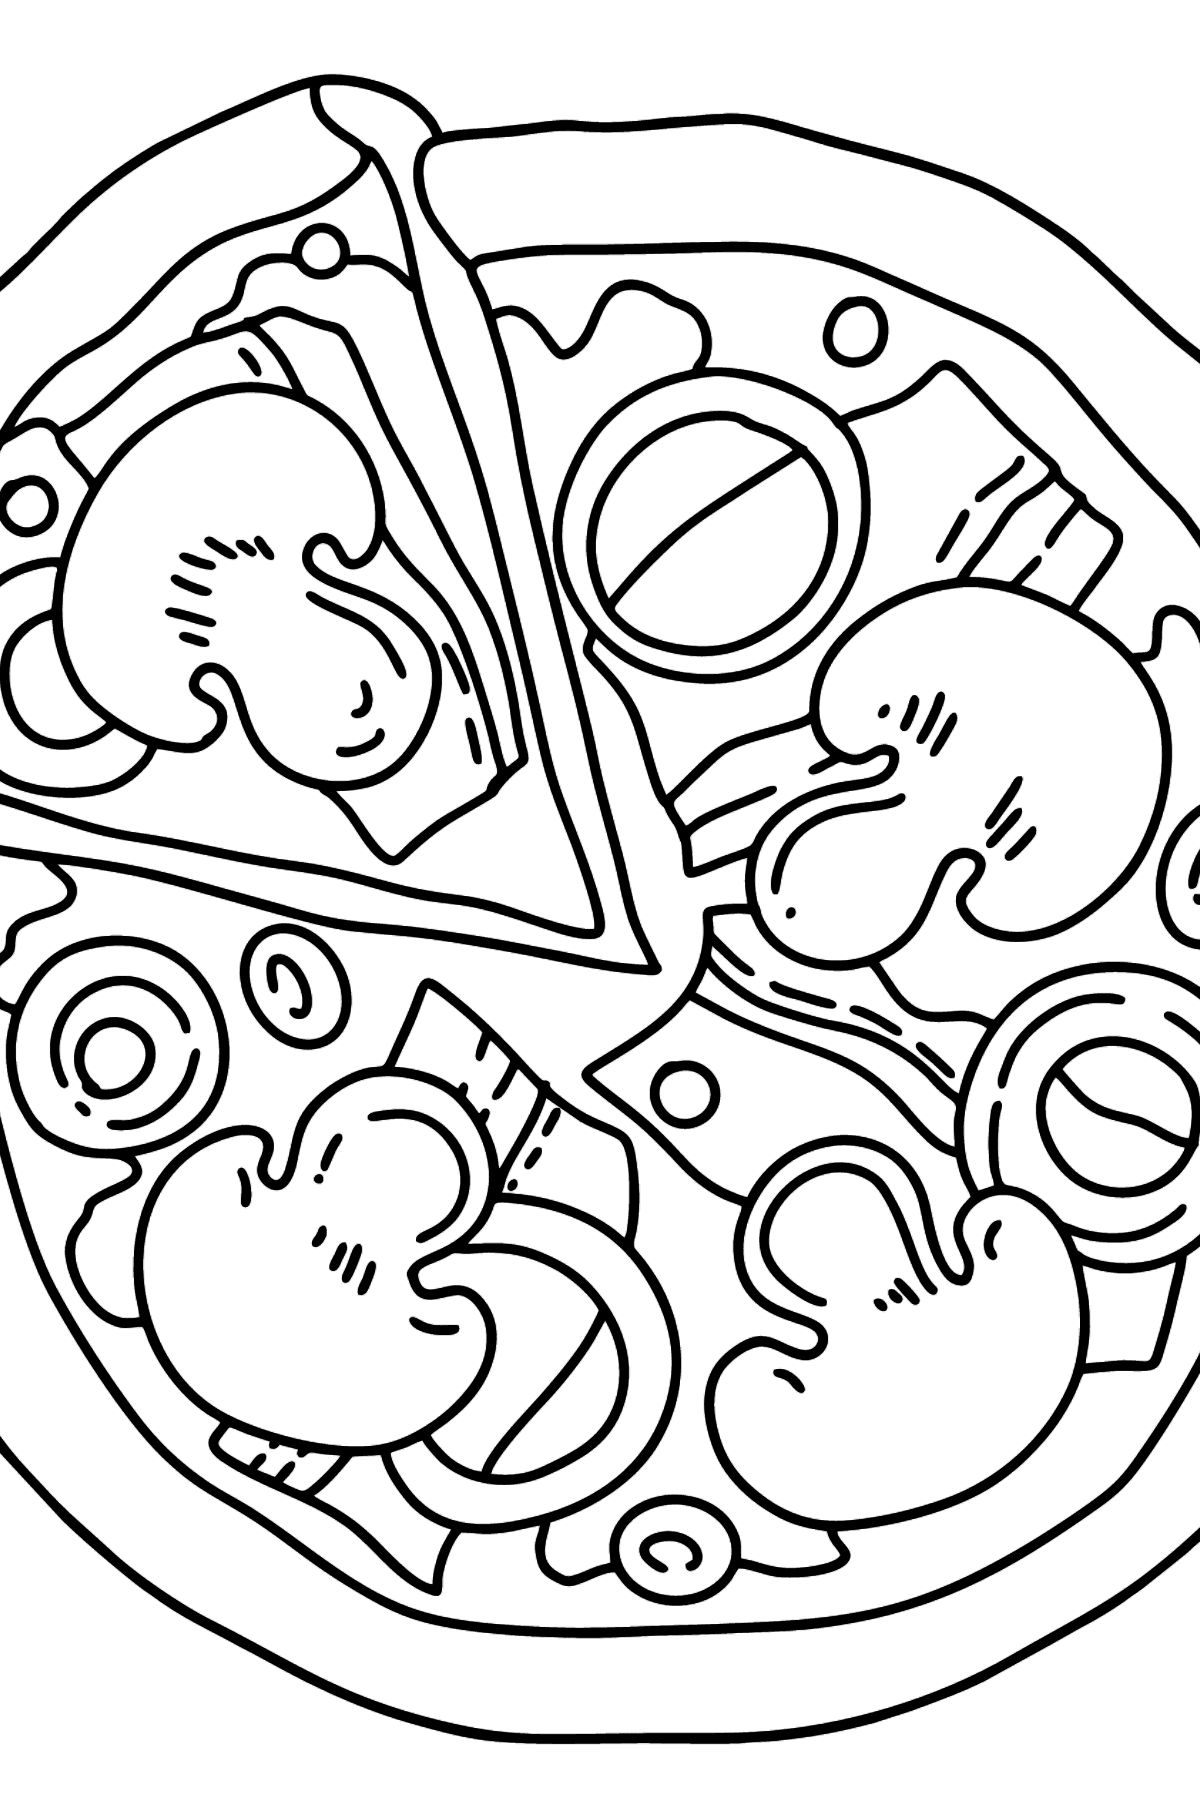 Pizza with Mushrooms coloring page - Coloring Pages for Kids